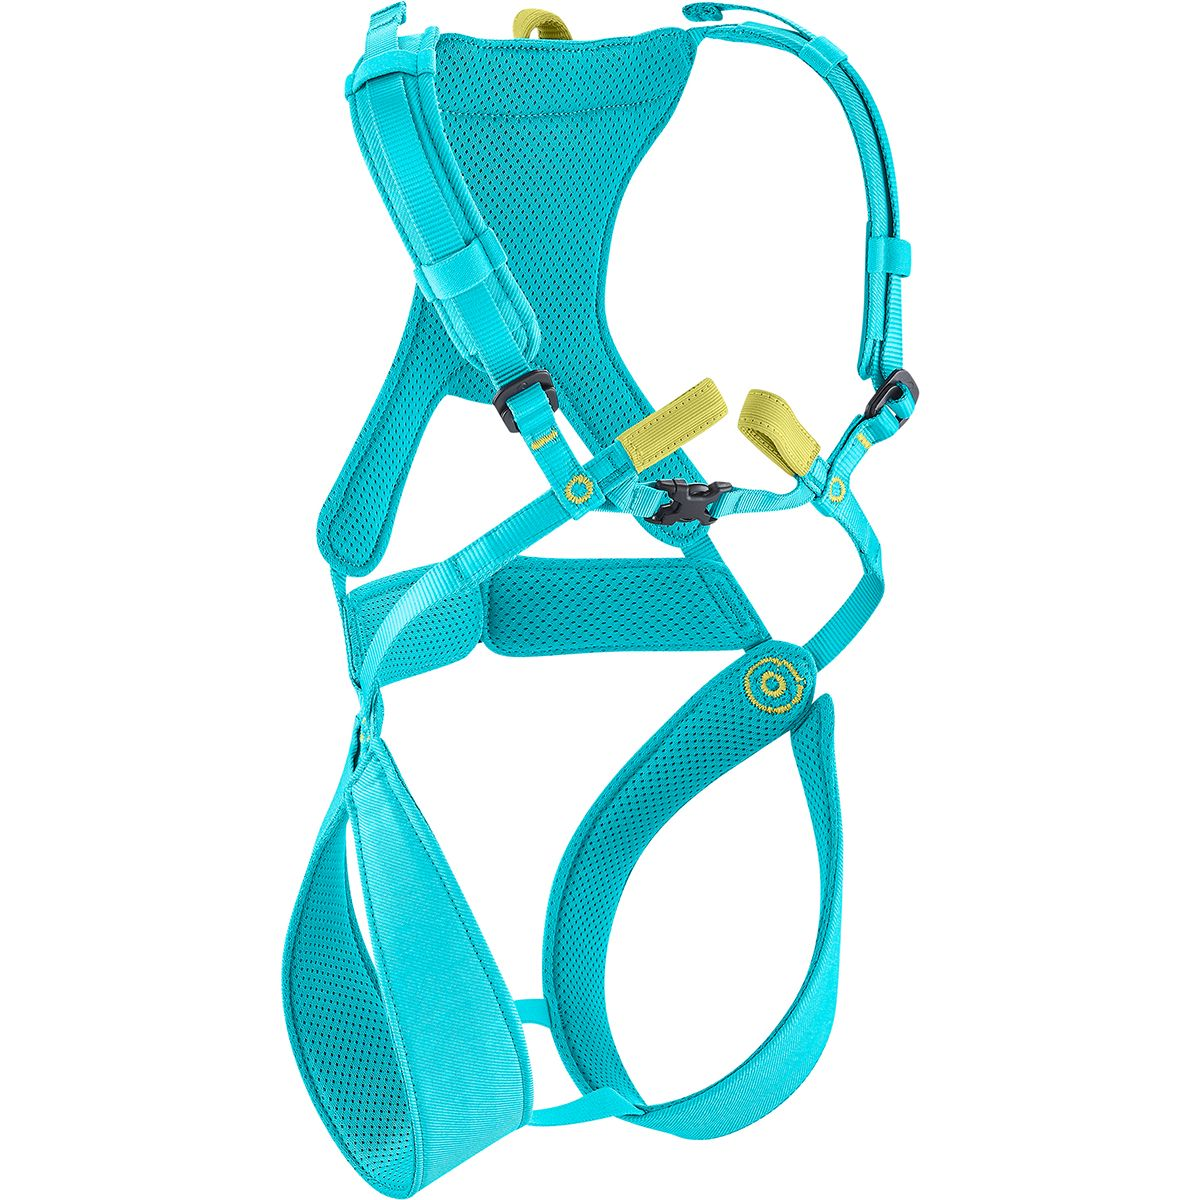 Edelrid Fraggle Kids Harness